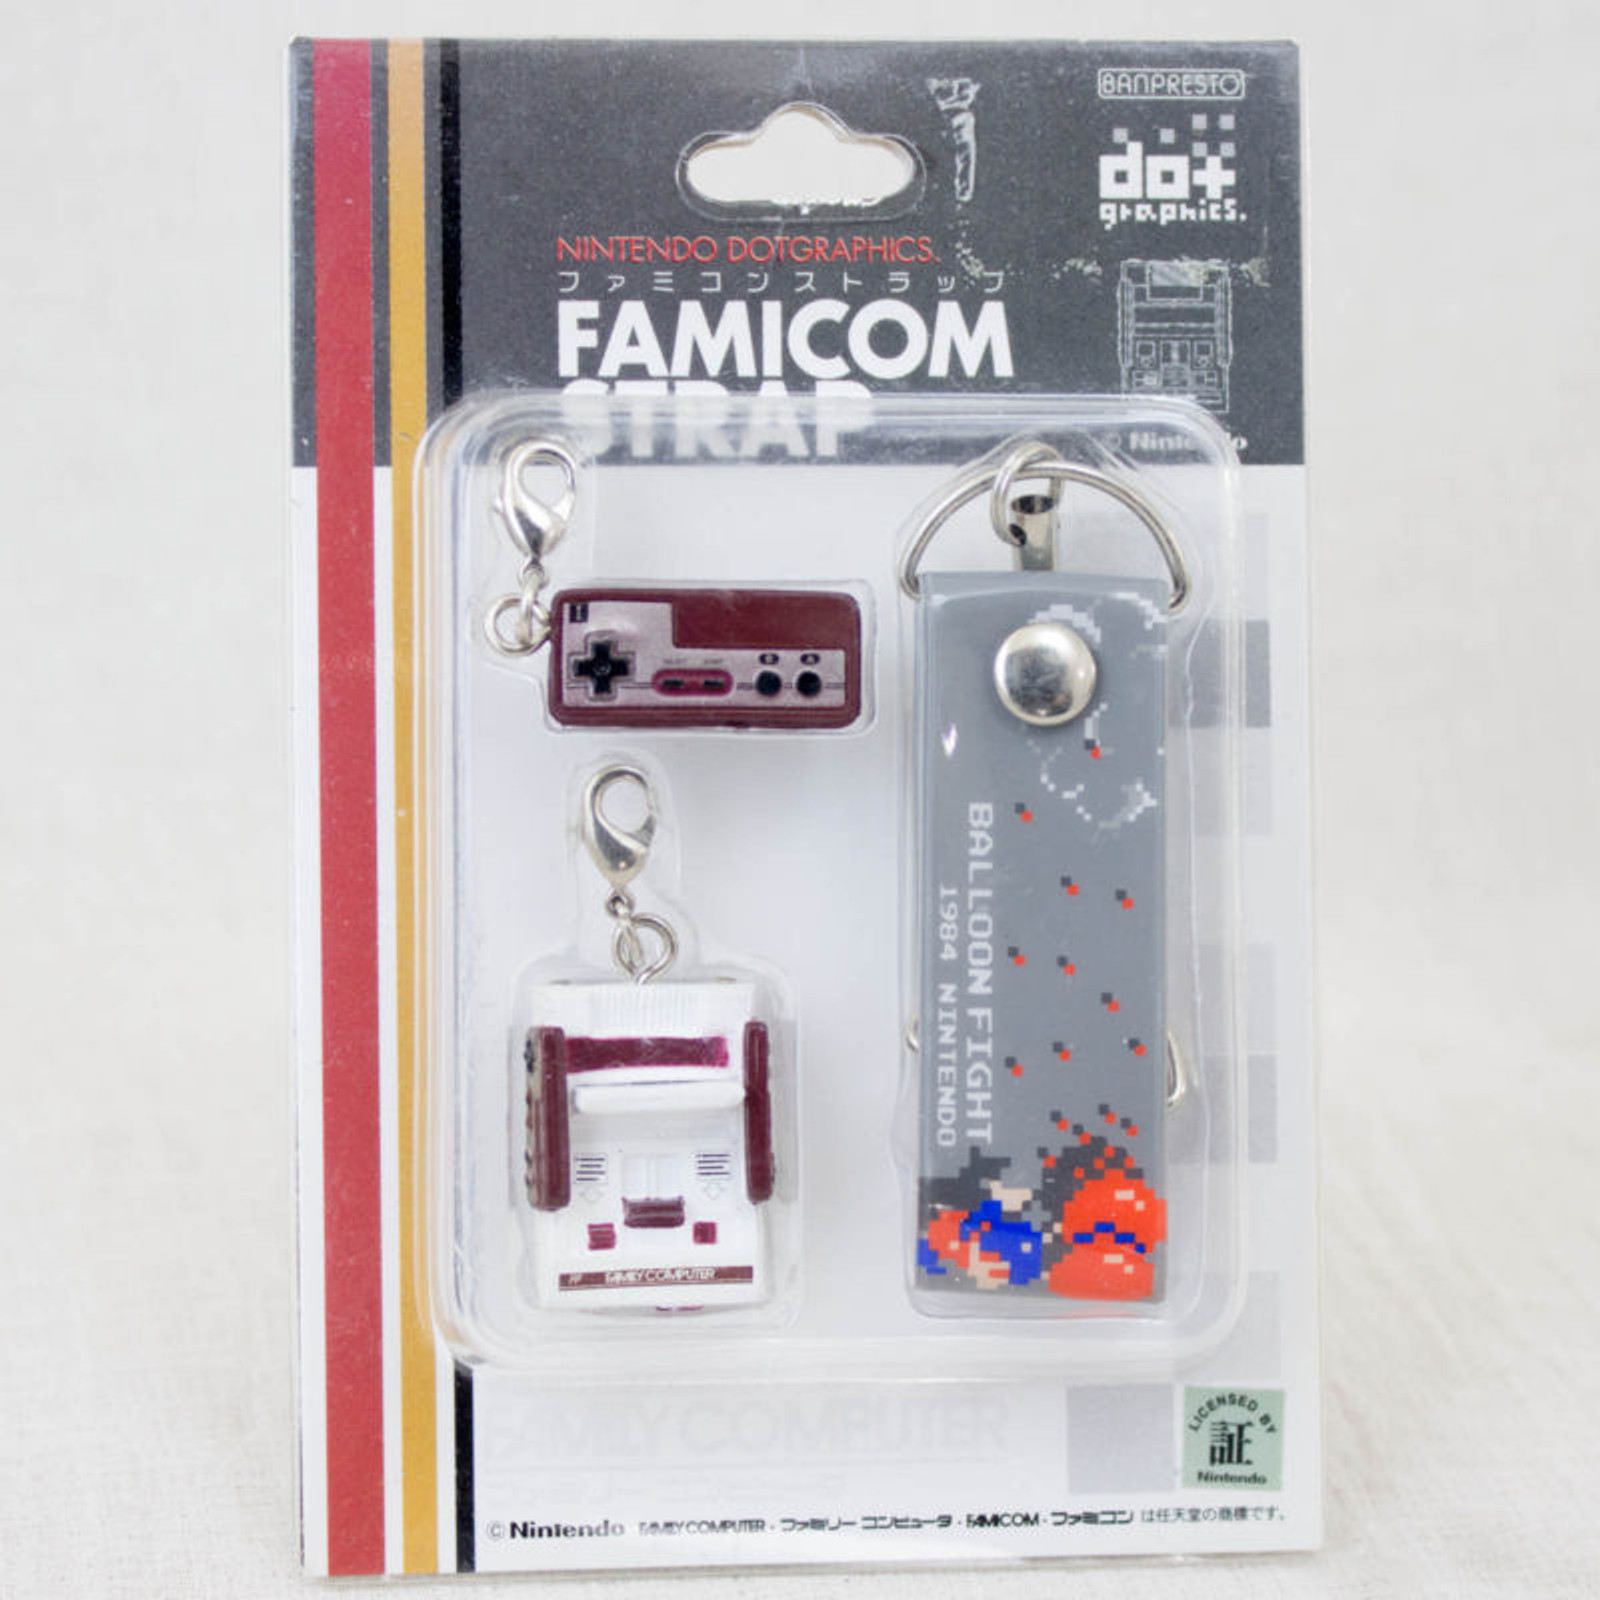 Nintendo Dotgraphics Famicom Miniature Figure Strap Balloon Fight Ver. JAPAN